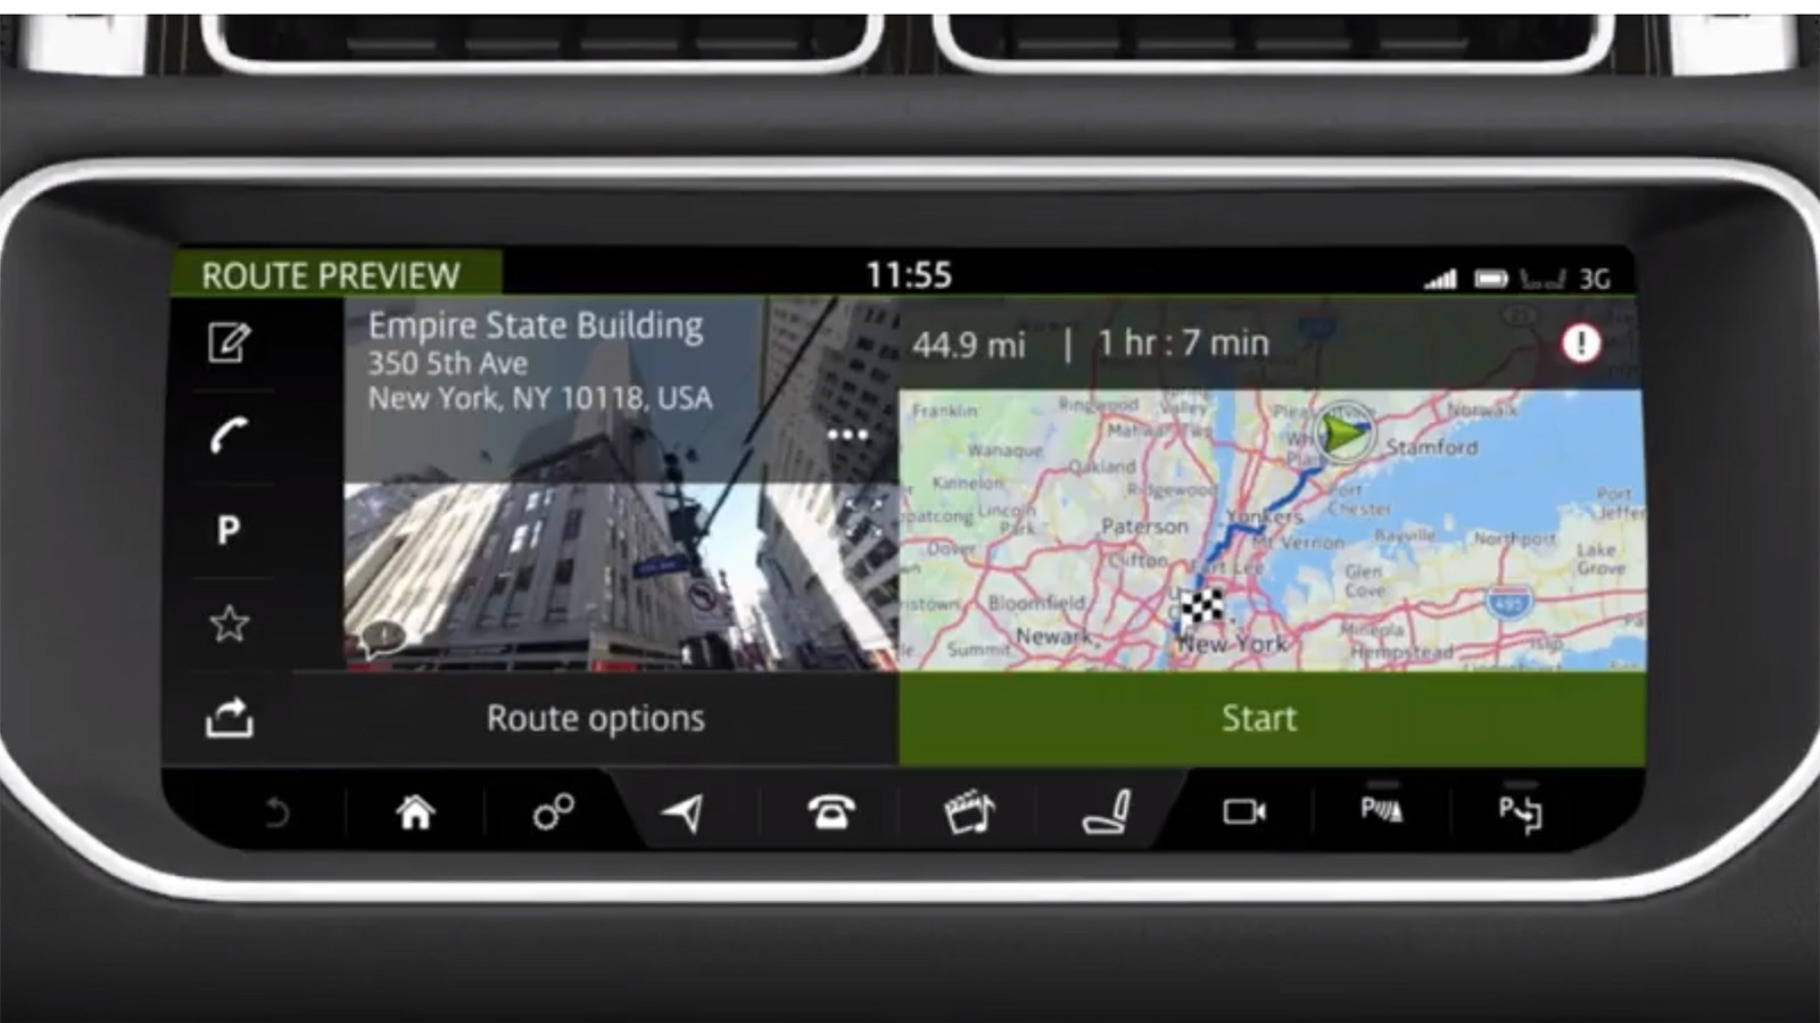 2017 Range Rover Sport InControl Touch Pro | How to Enter a Navigation Destination